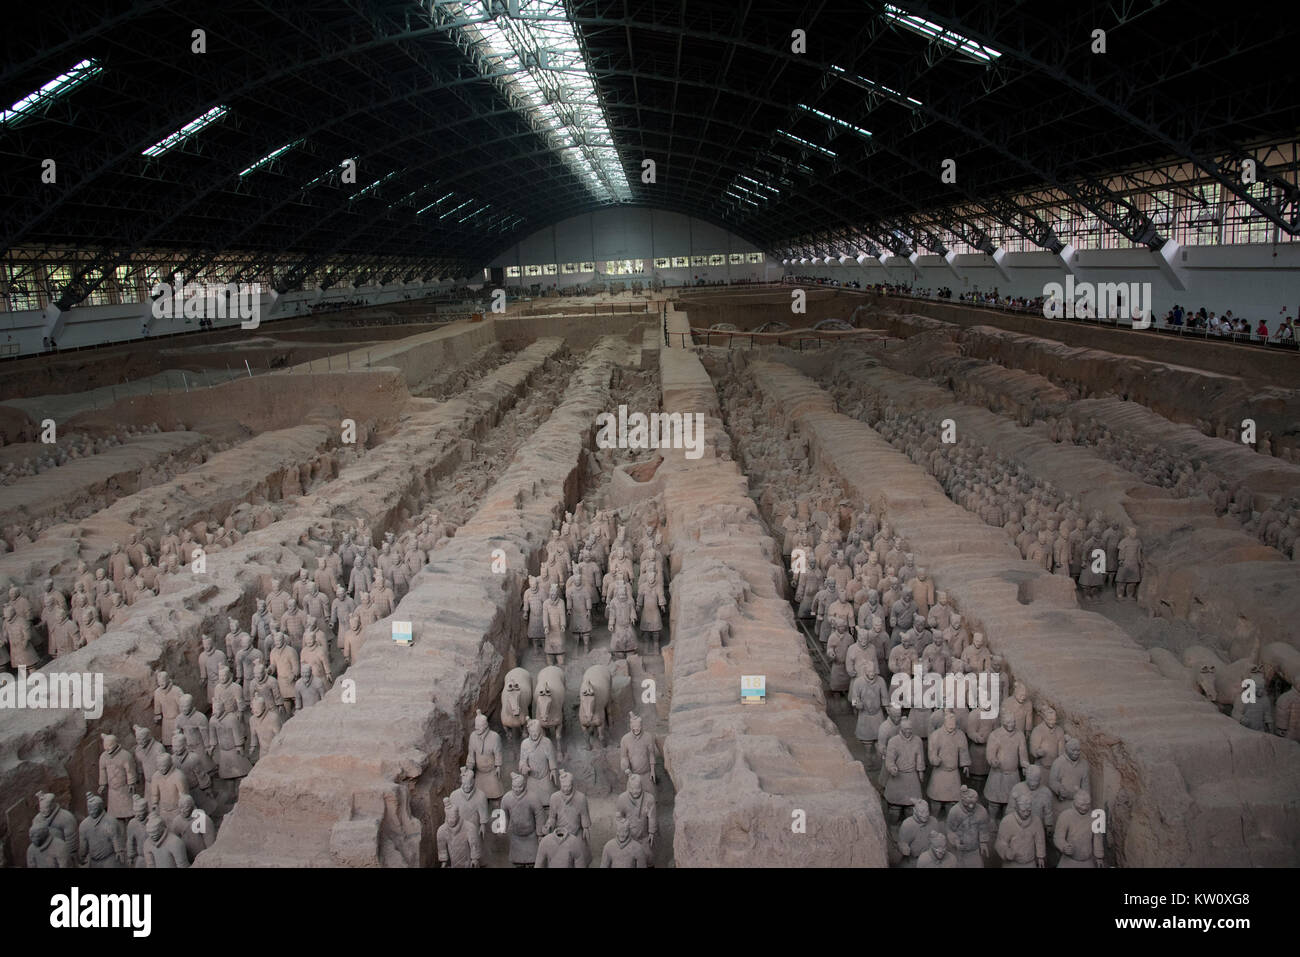 The Qin Tomb Terracotta Warriors and Horses, Xi'an, China - Stock Image